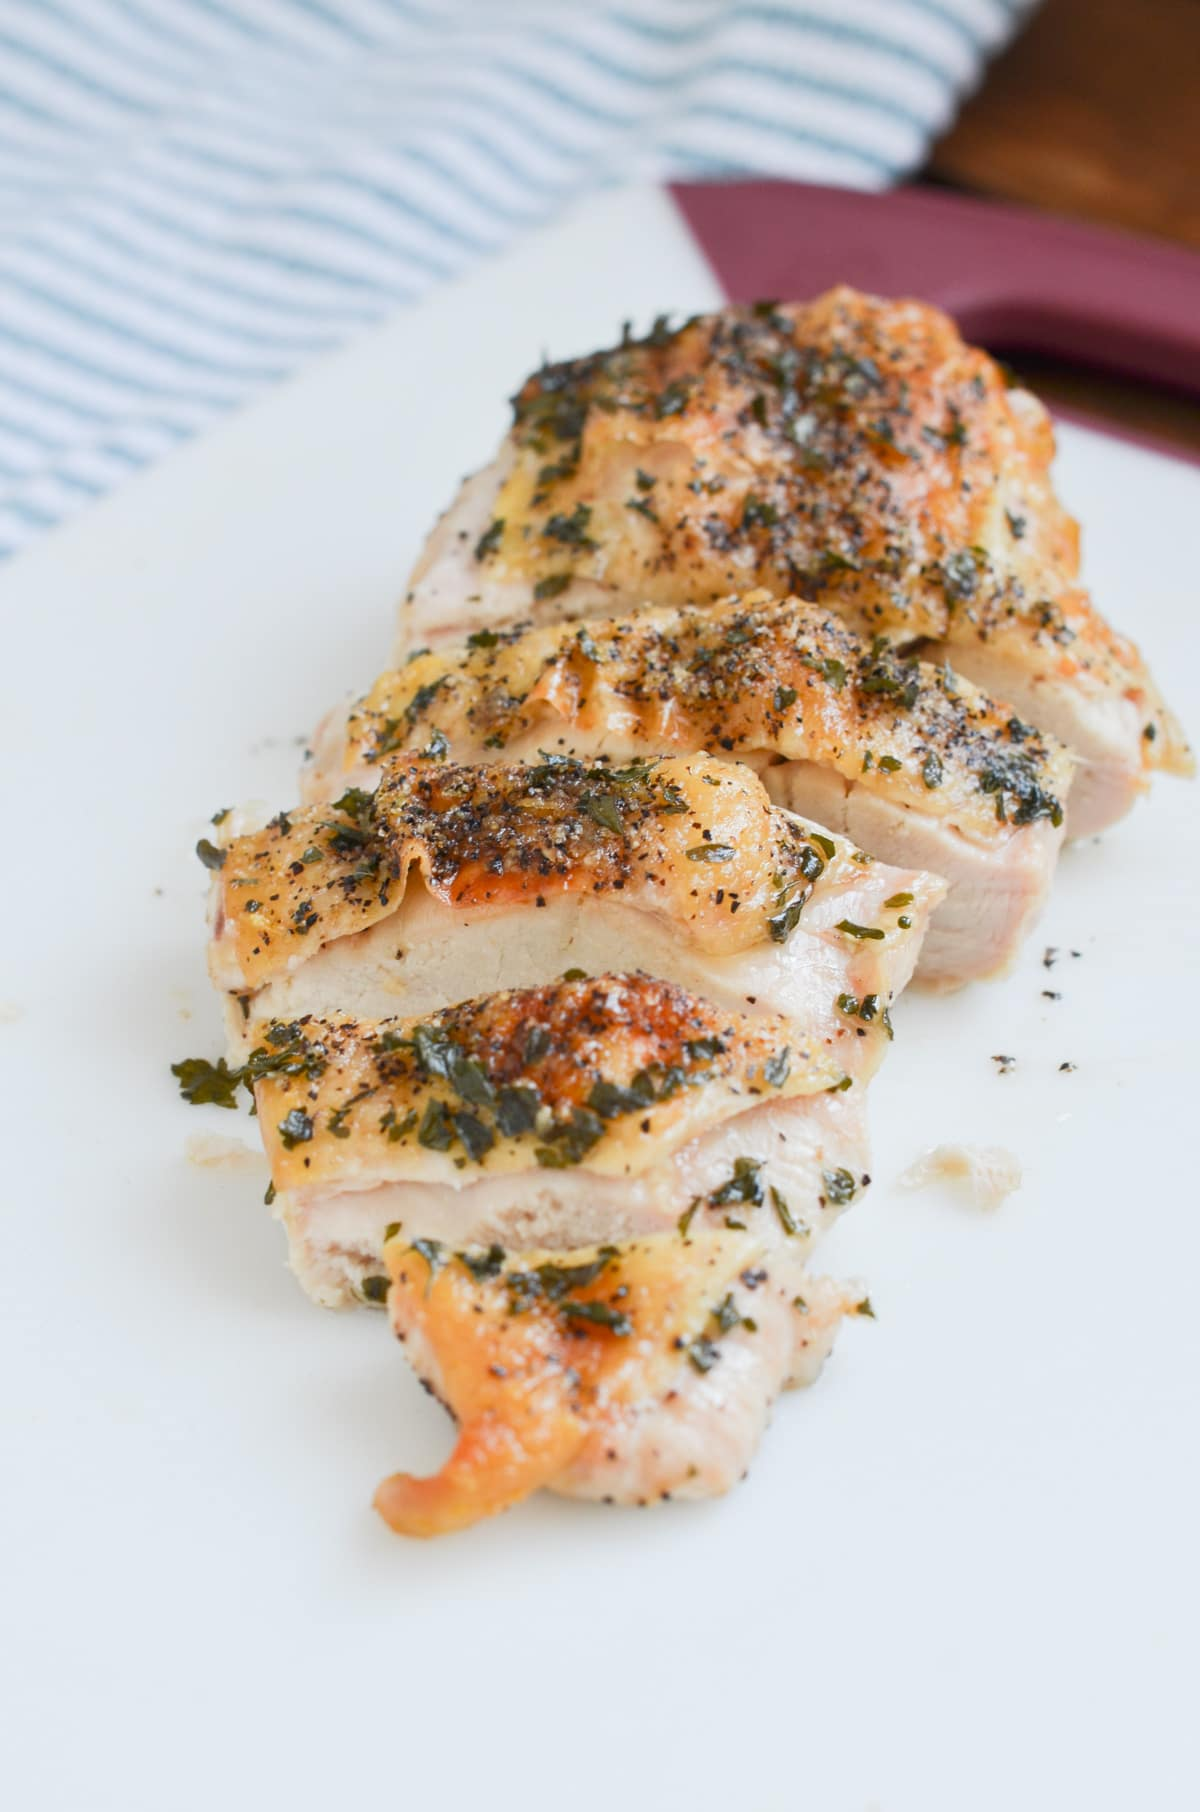 baked chicken breast sliced on cutting board.